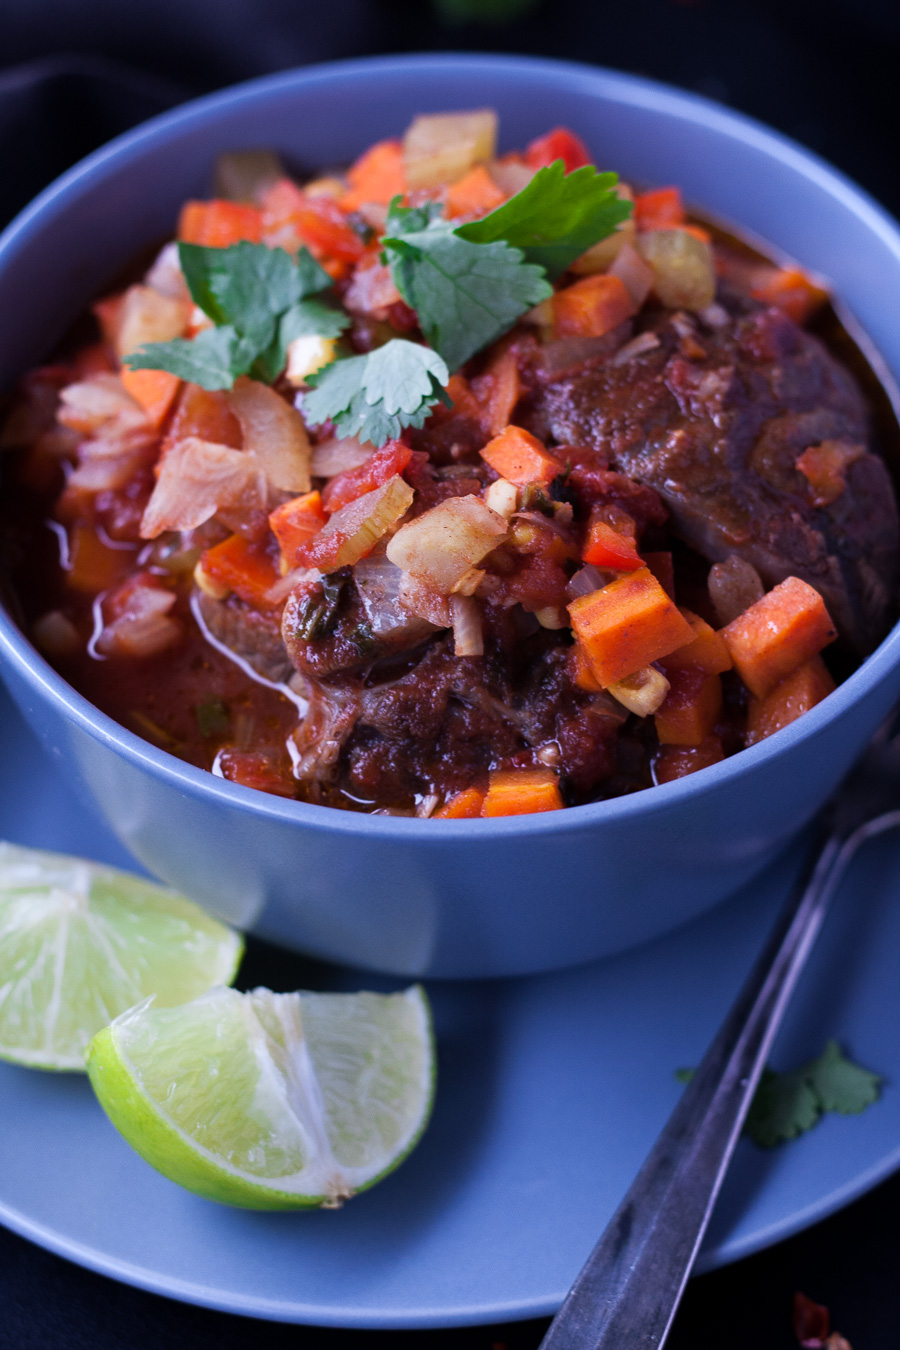 An easy dish that combines the flavours of Mexico and Italy, put all the ingredients in the slow cooker in the morning then all you need to do is dish it up for dinner!